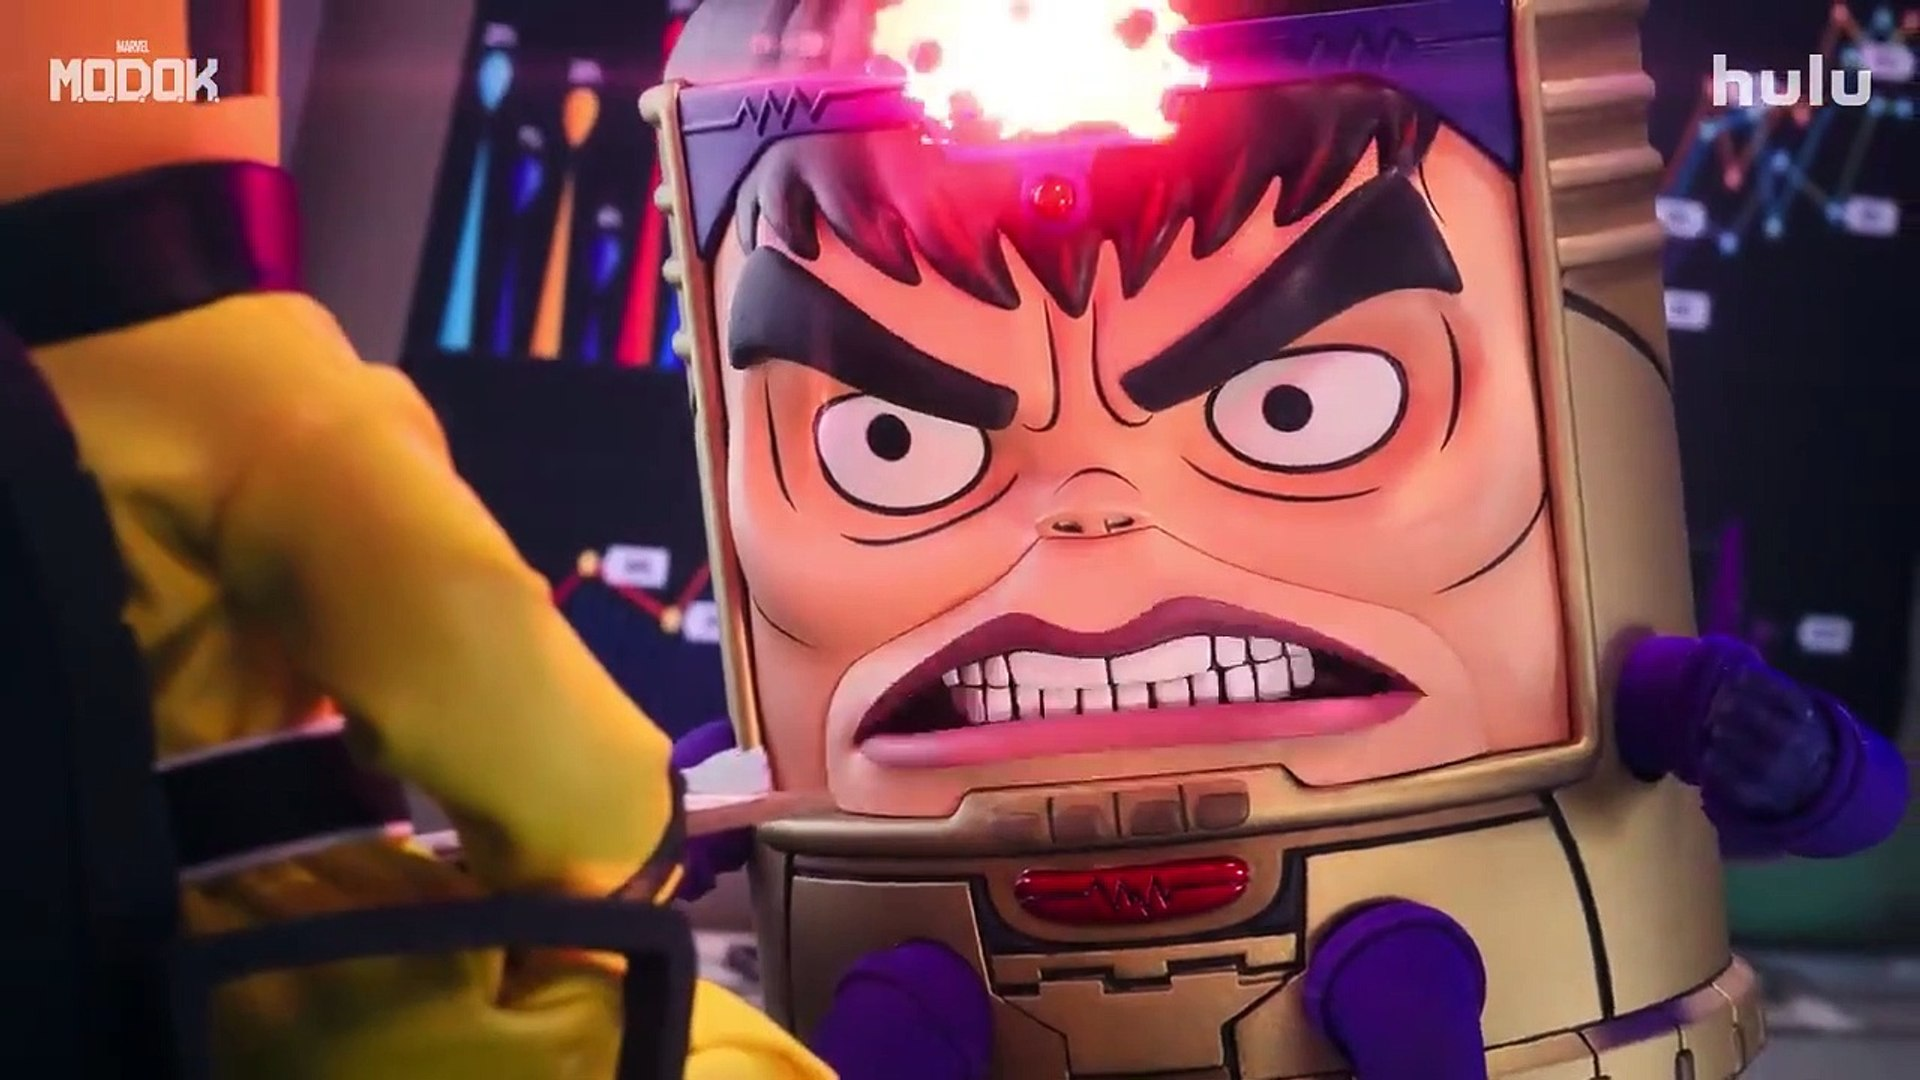 Marvel's M.O.D.O.K. - Official Teaser Trailer (2021) Patton Oswalt, Ben Schwartz | Hulu